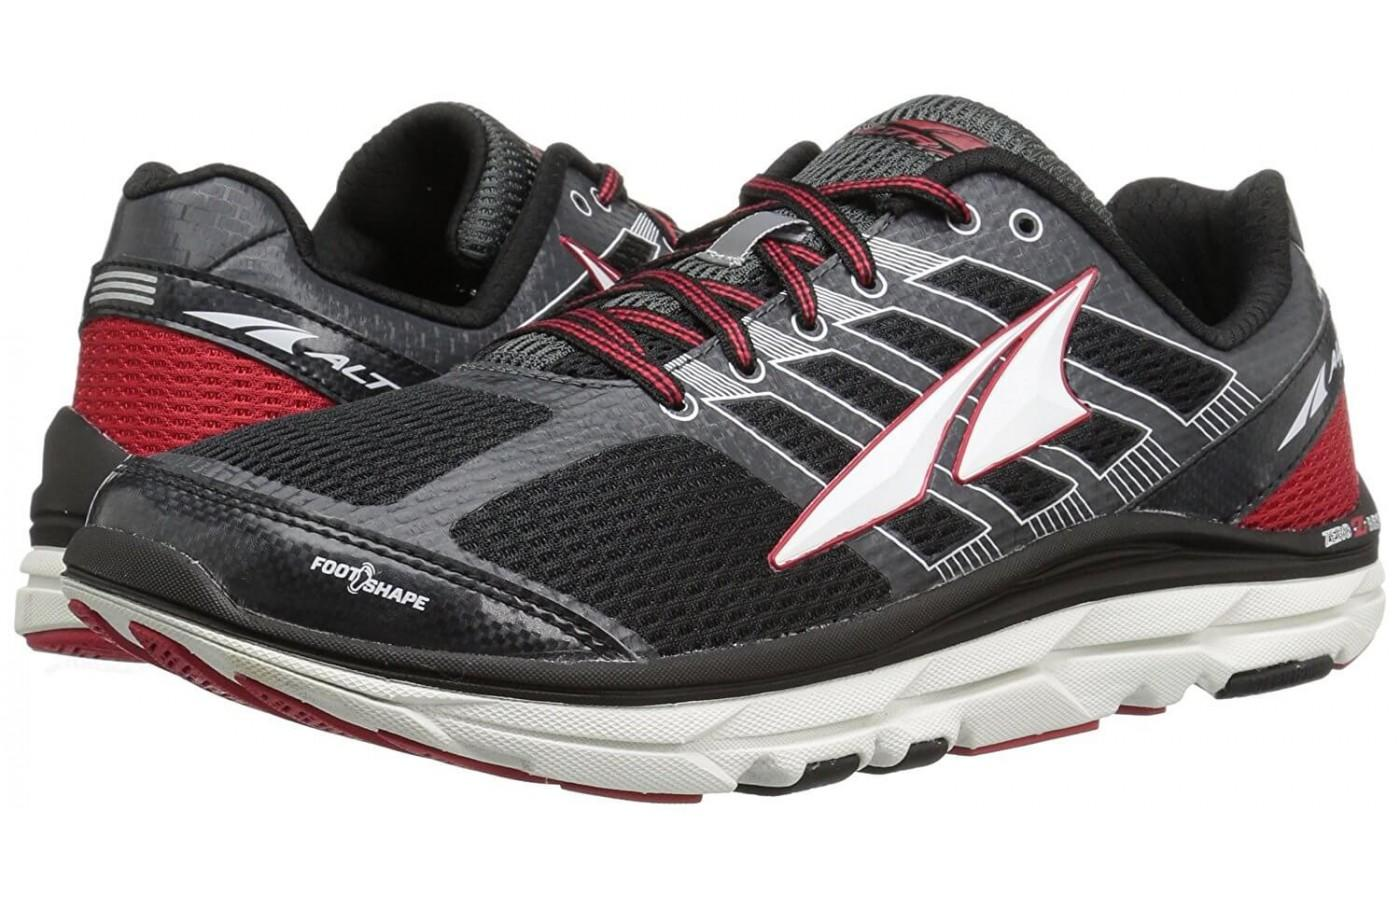 Altra Provision 3.0 is a reliable every day running shoe